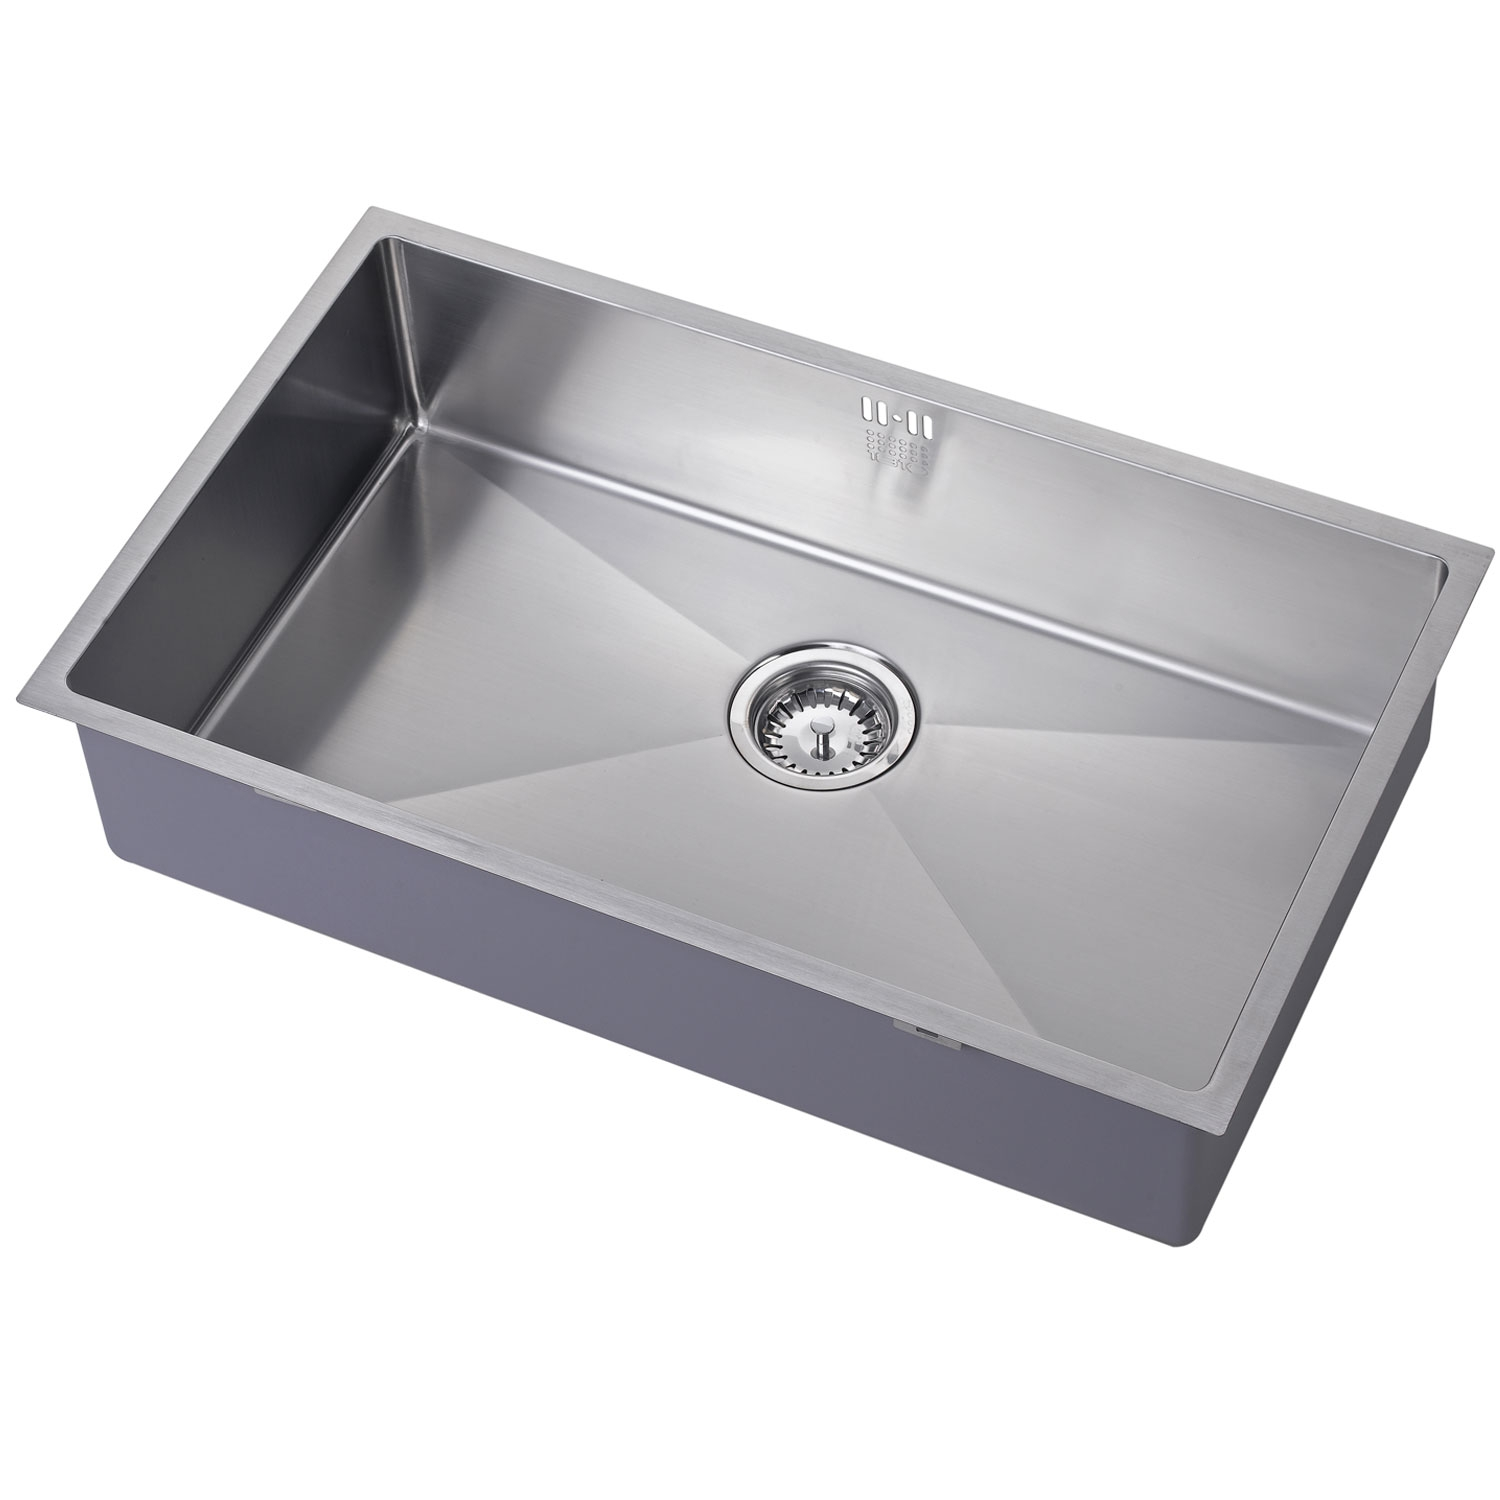 The 1810 Company Zenuno15 700U 1.0 Bowl Kitchen Sink - Stainless Steel